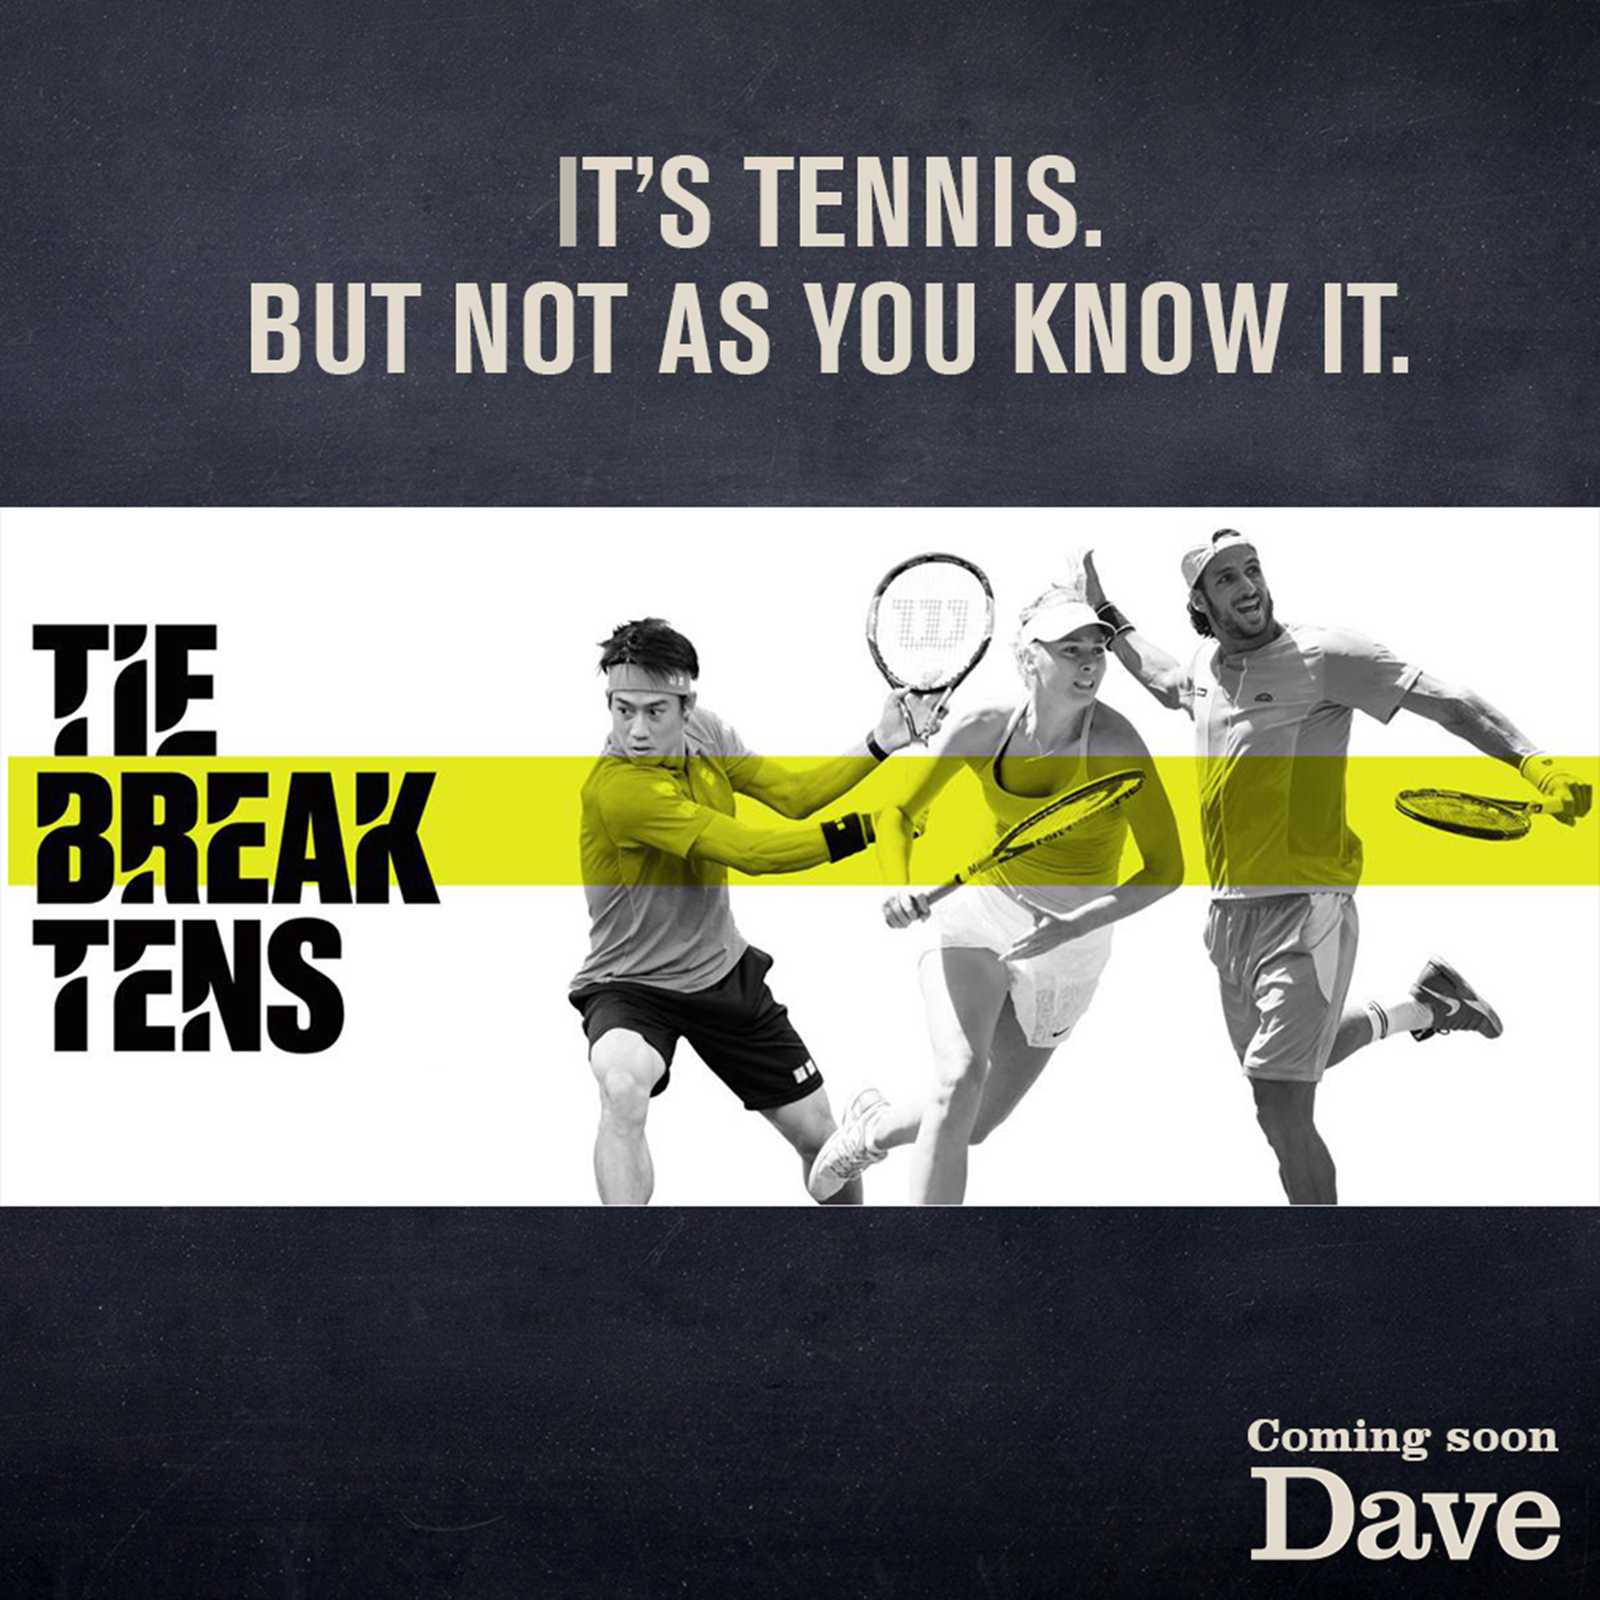 TIE BREAK TENS SERIES AWARD THREE YEAR HOST BROADCAST PRODUCTION CONTRACT TO SUNSET+VINE